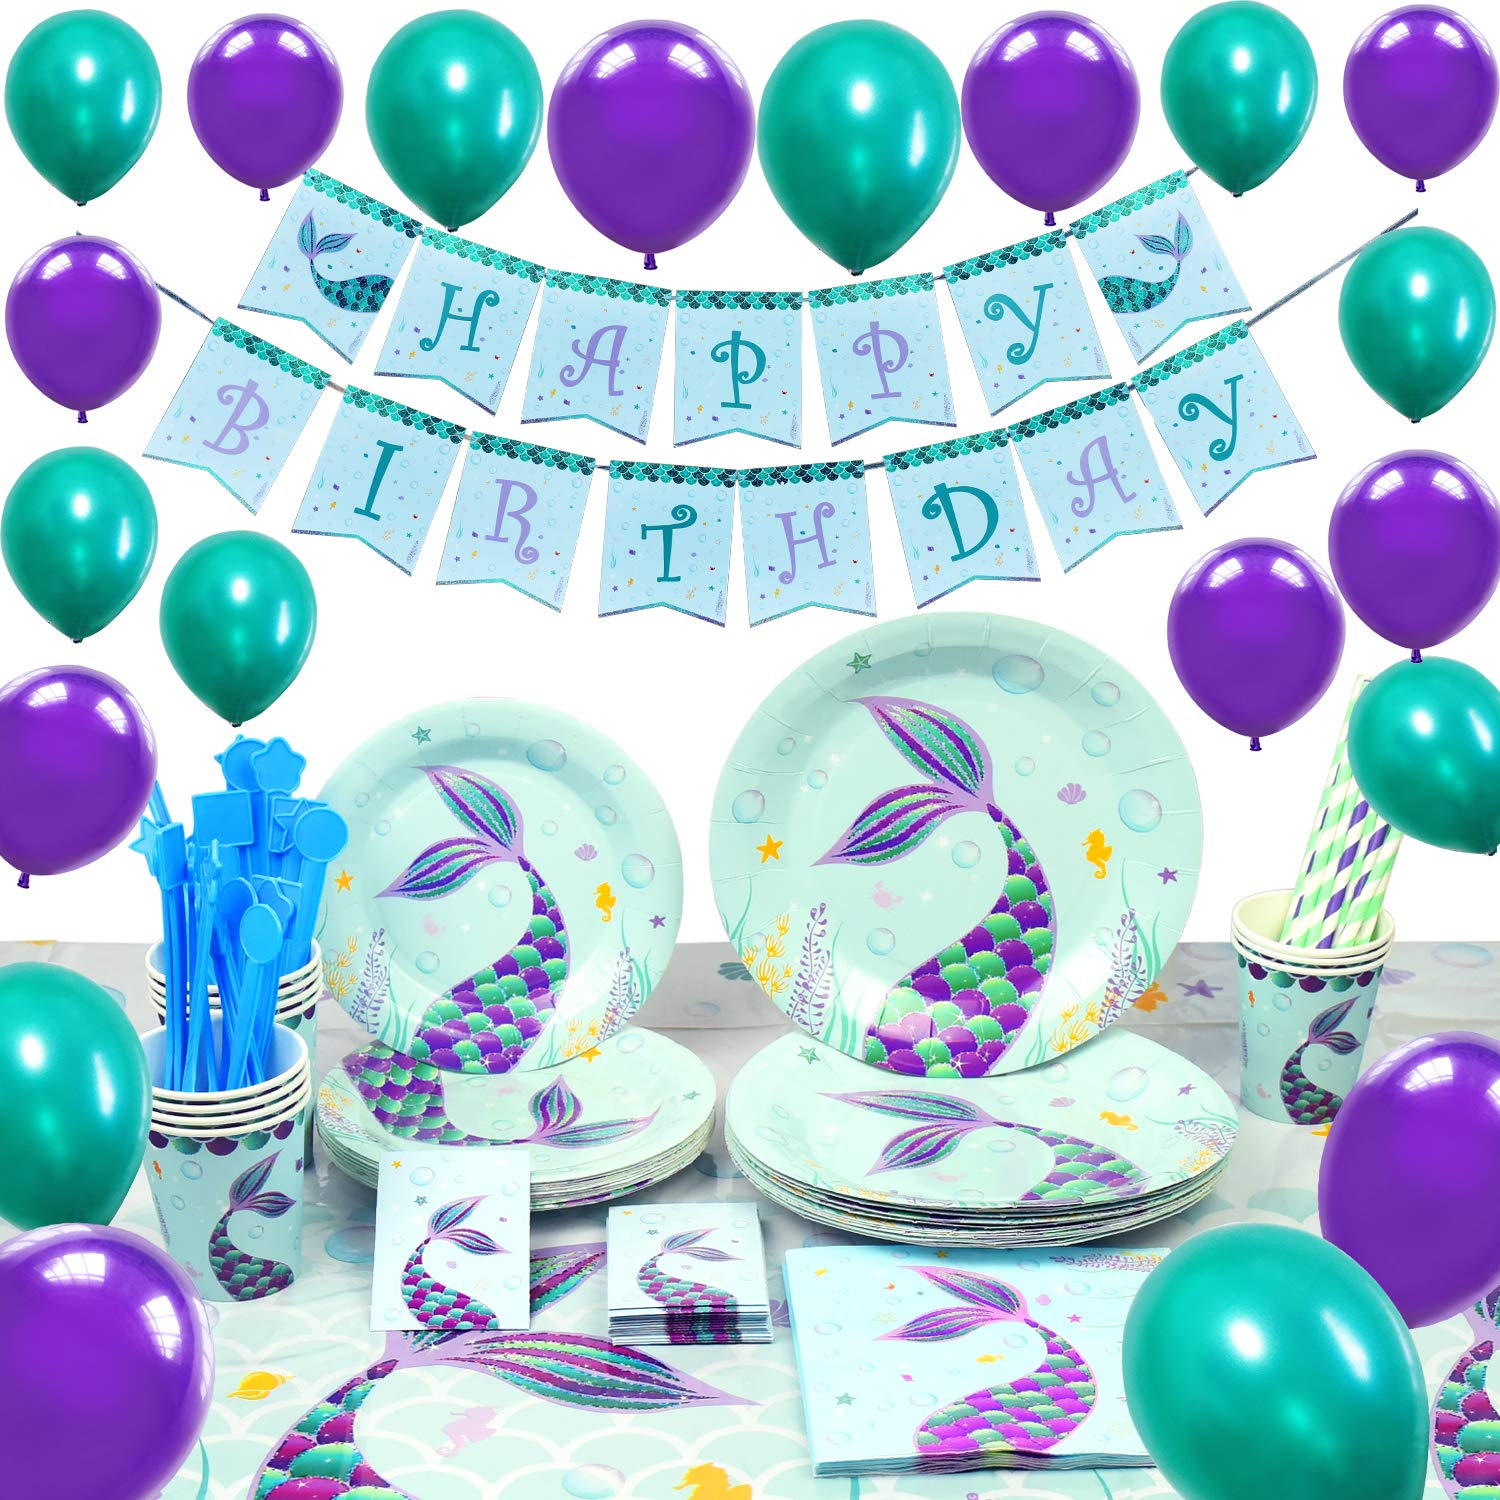 WERNNSAI Pool Mermaid Party Supplies Kit - Party Favors Girls Birthday Party Decoration Cutlery Bag Table Cover Plates Cups Napkins Straws Utensils Birthday Banner & Balloons Serves 16 Guests 169 PCS by WERNNSAI (Image #1)